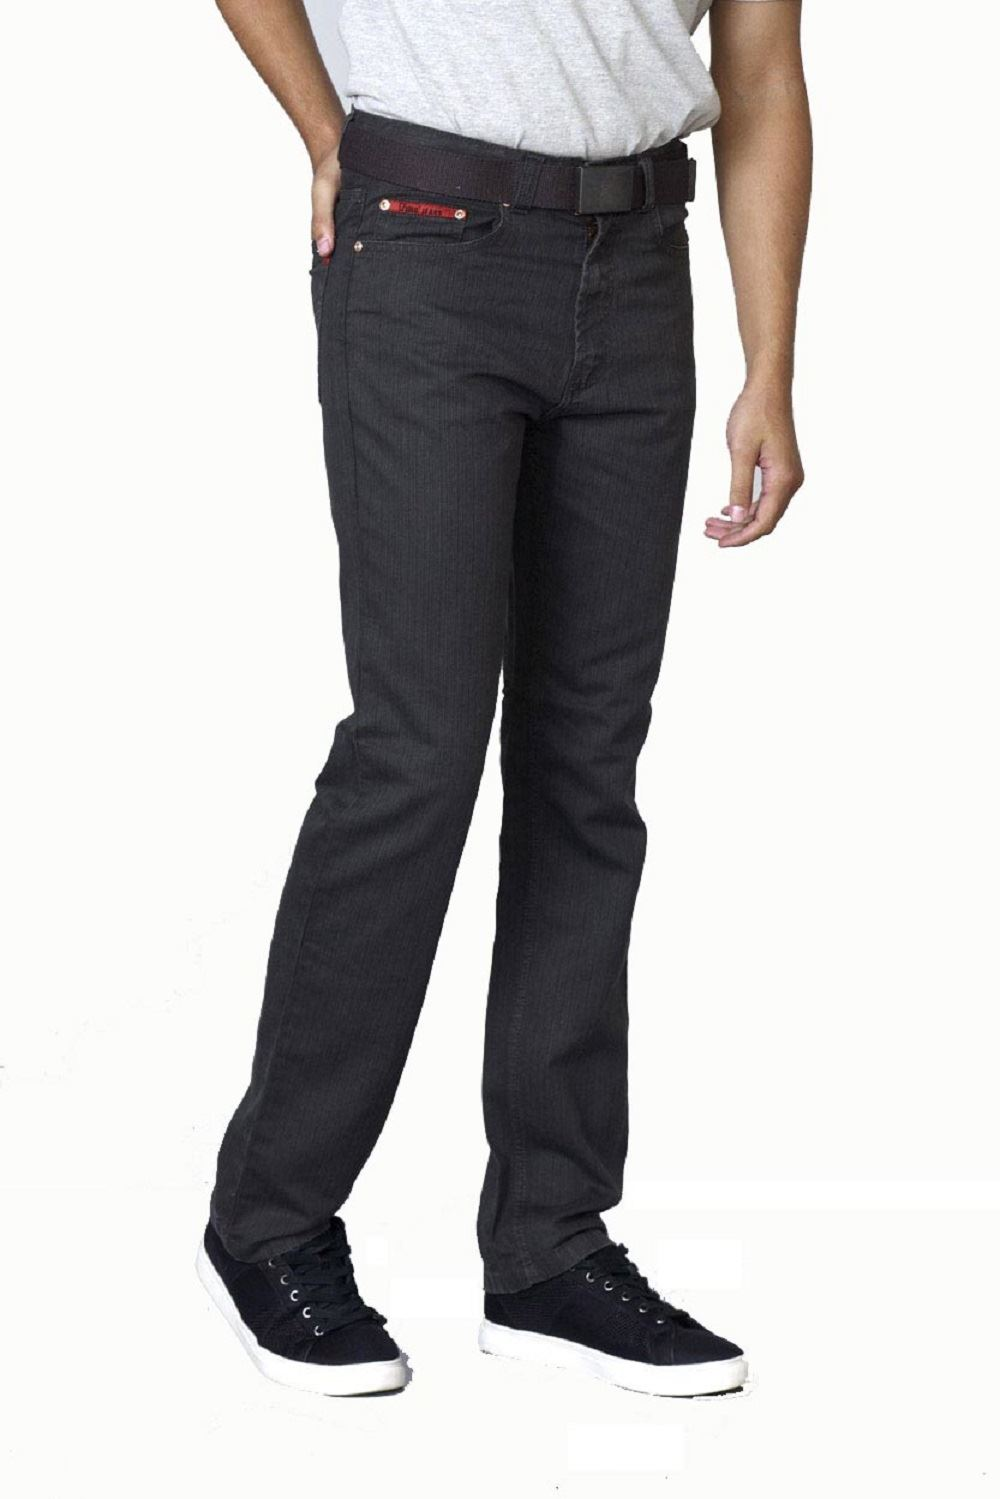 Duke London Mens Big Size Bedford Cord Enzyme Washed Jeans Canary in Charcoal